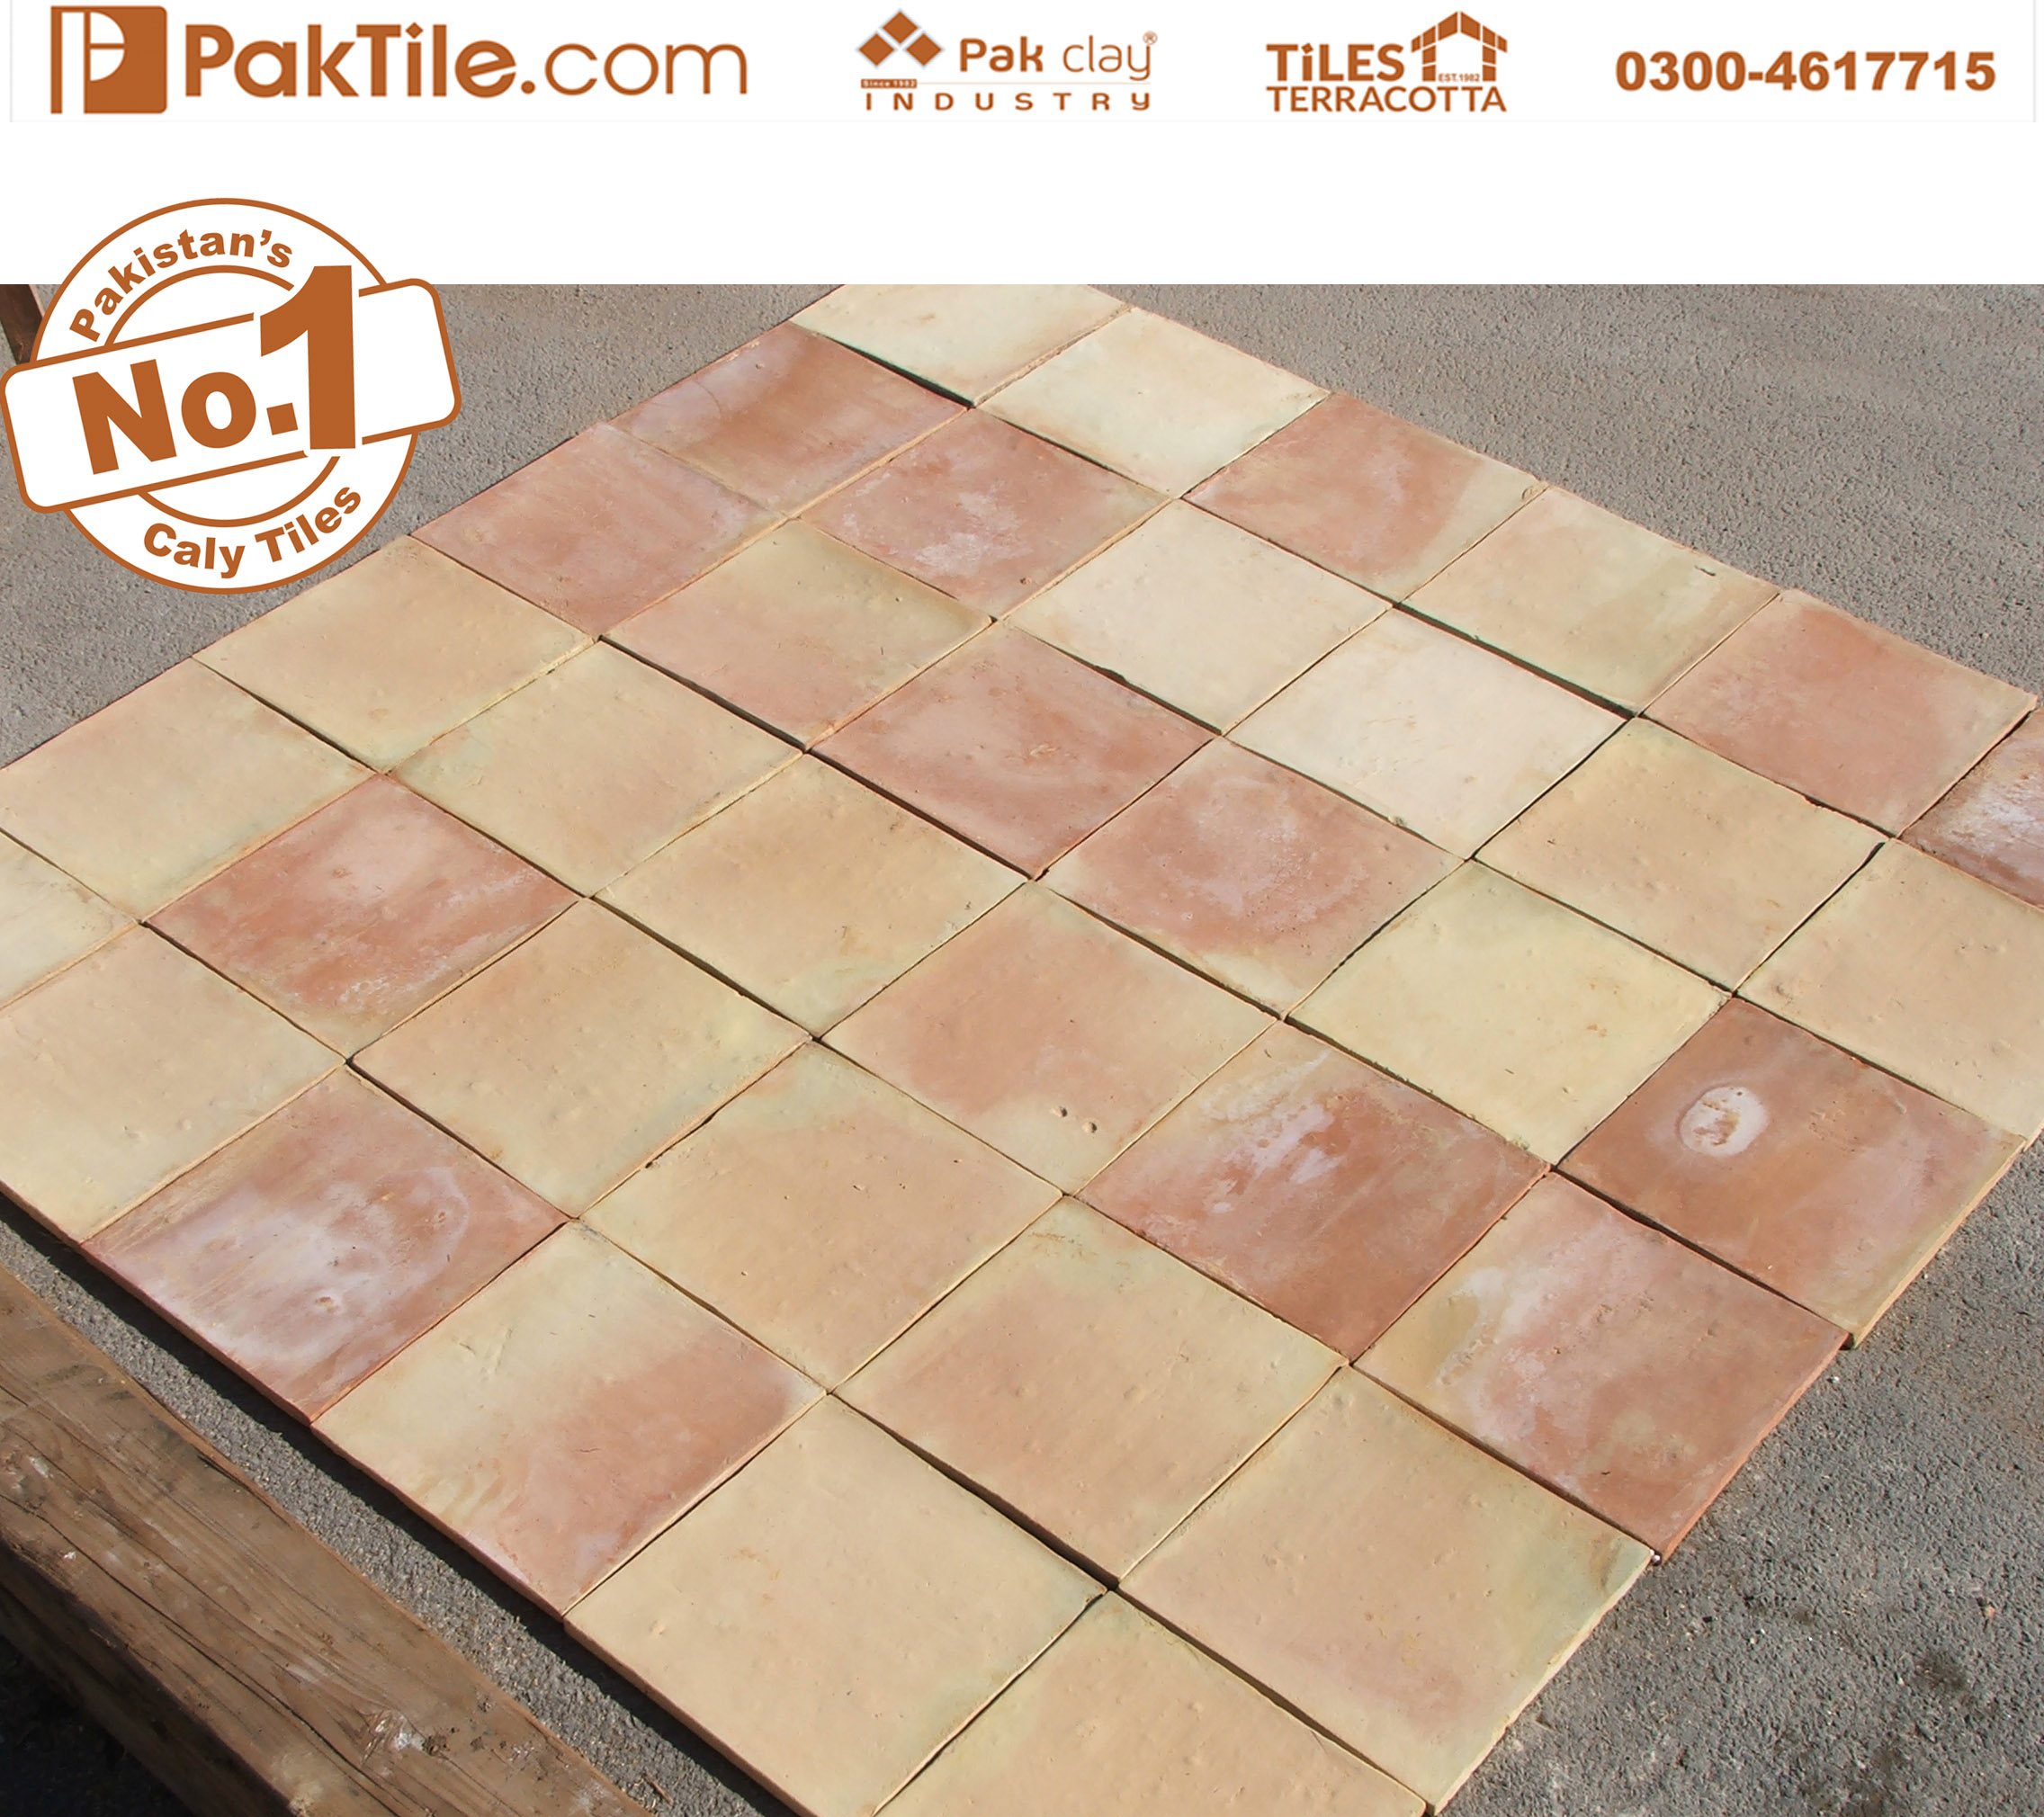 Pak Clay Industry non slip swimming pool floor tiles design company outlet prices in lahore karachi islamabad kpk images